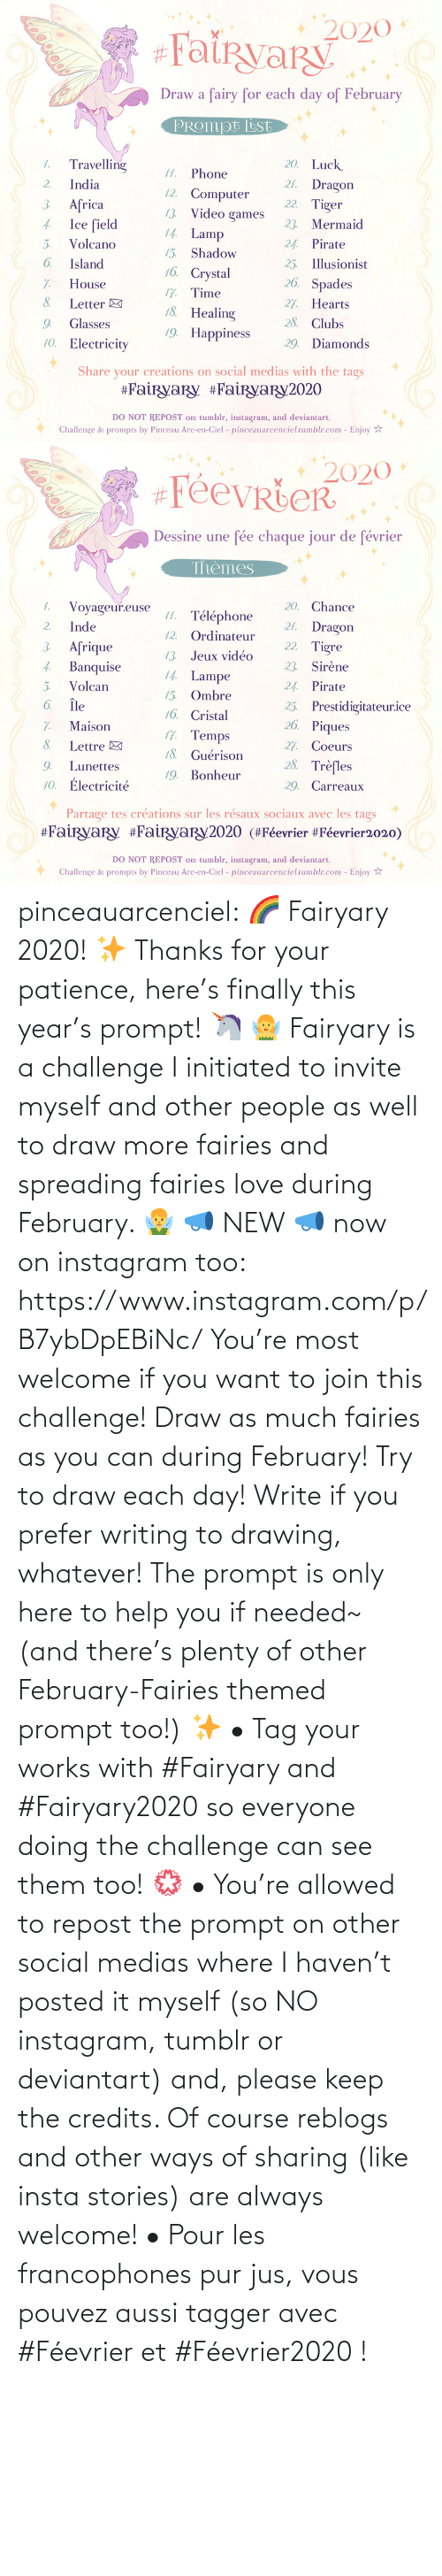 tag: pinceauarcenciel: 🌈 Fairyary 2020! ✨ Thanks for your patience, here's finally this year's prompt! 🦄 🧚‍♀️ Fairyary is a challenge I initiated to invite myself and other people as well to draw more fairies and spreading fairies love during February. 🧚‍♂️ 📣 NEW 📣 now on instagram too: https://www.instagram.com/p/B7ybDpEBiNc/ You're most welcome if you want to join this challenge! Draw as much fairies as you can during February! Try to draw each day! Write if you prefer writing to drawing, whatever! The prompt is only here to help you if needed~ (and there's plenty of other February-Fairies themed prompt too!) ✨ • Tag your works with #Fairyary and #Fairyary2020 so everyone doing the challenge can see them too! 💮 • You're allowed to repost the prompt on other social medias where I haven't posted it myself (so NO instagram, tumblr or deviantart) and, please keep the credits. Of course reblogs and other ways of sharing (like insta stories) are always welcome!